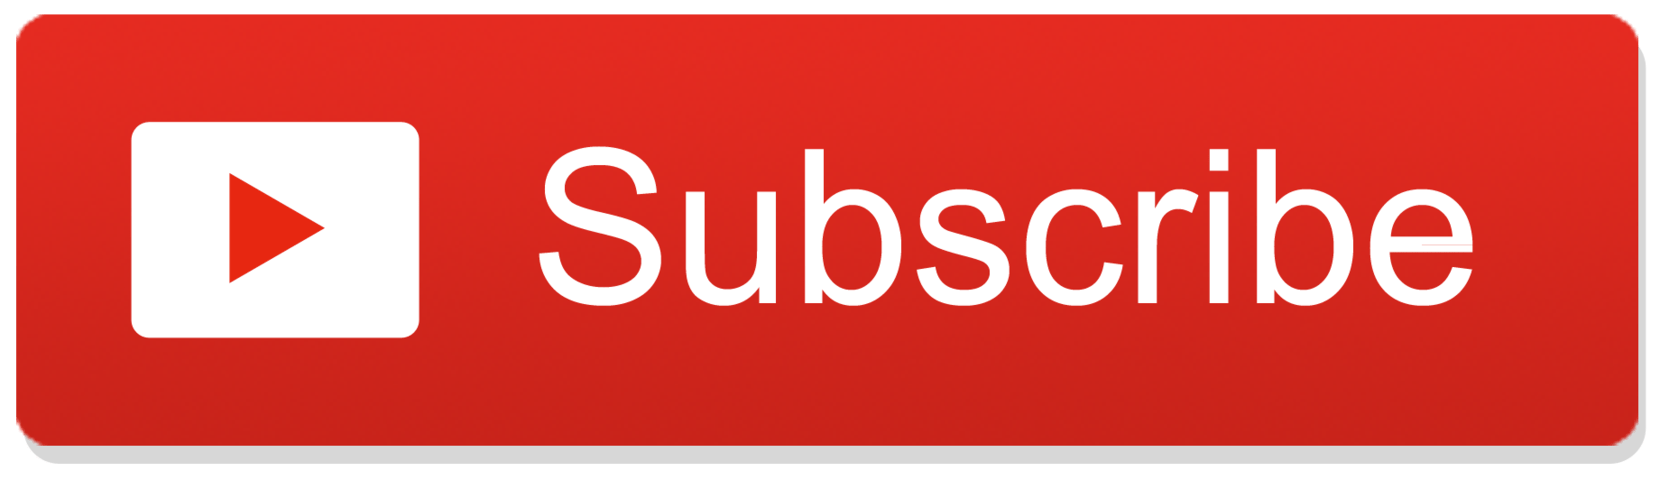 Daily Search Forum Recap July 31 2019 Youtube Banner Backgrounds Youtube Logo Youtube Banner Template